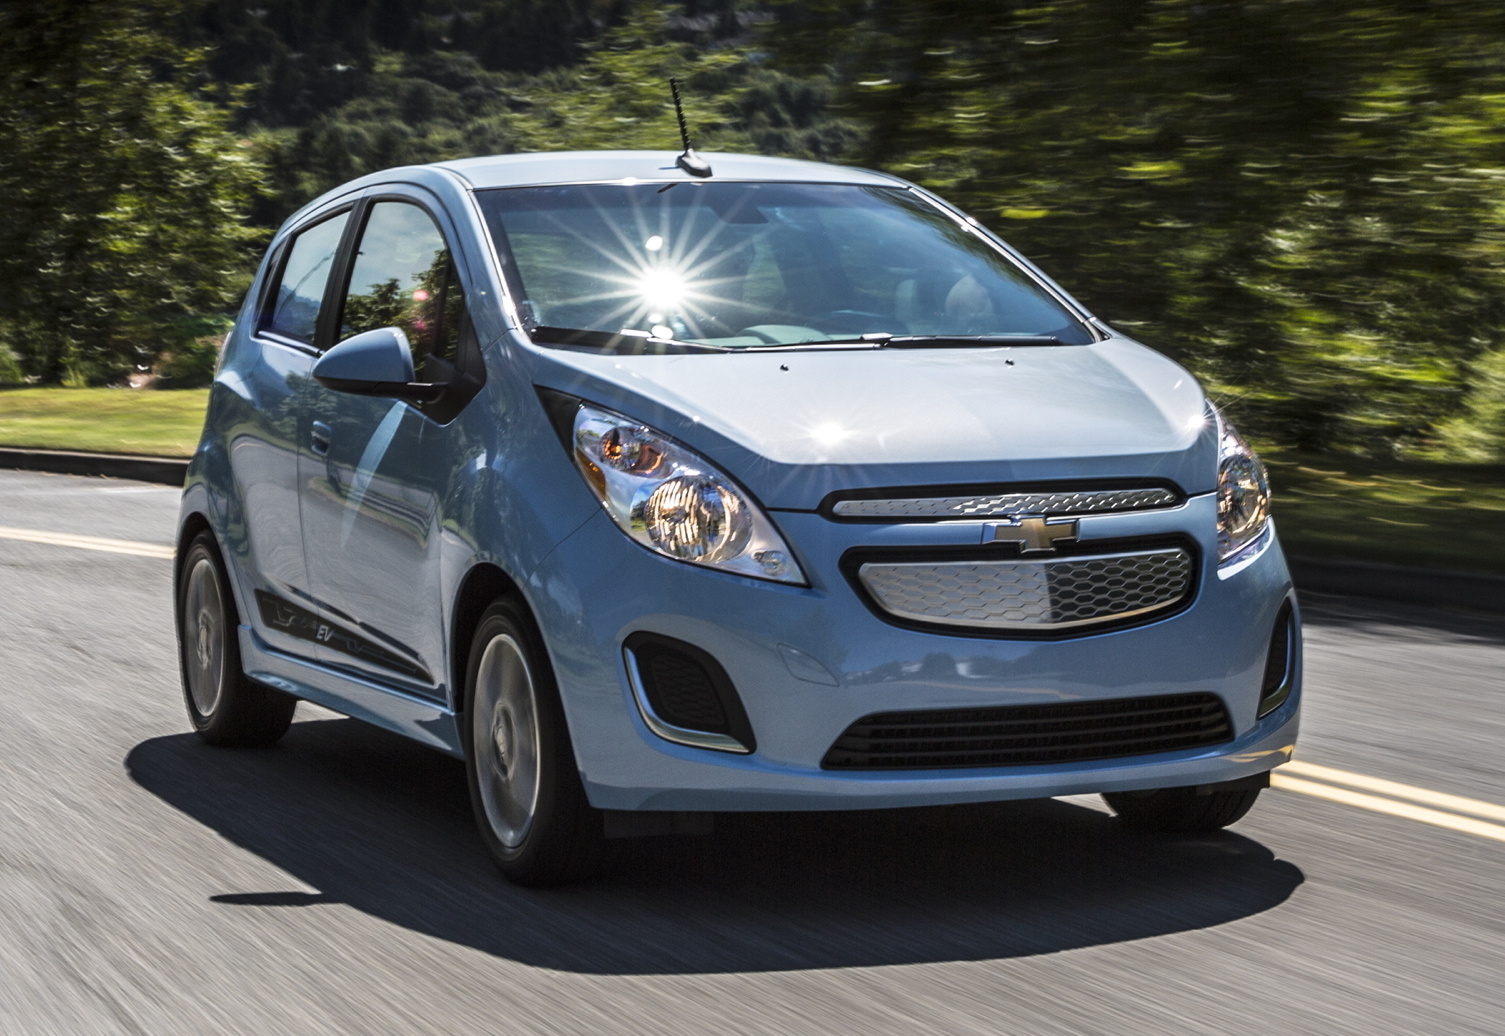 Chevy Dealers In Ga New 2015 / 2016 Chevrolet Spark EV For Sale - CarGurus